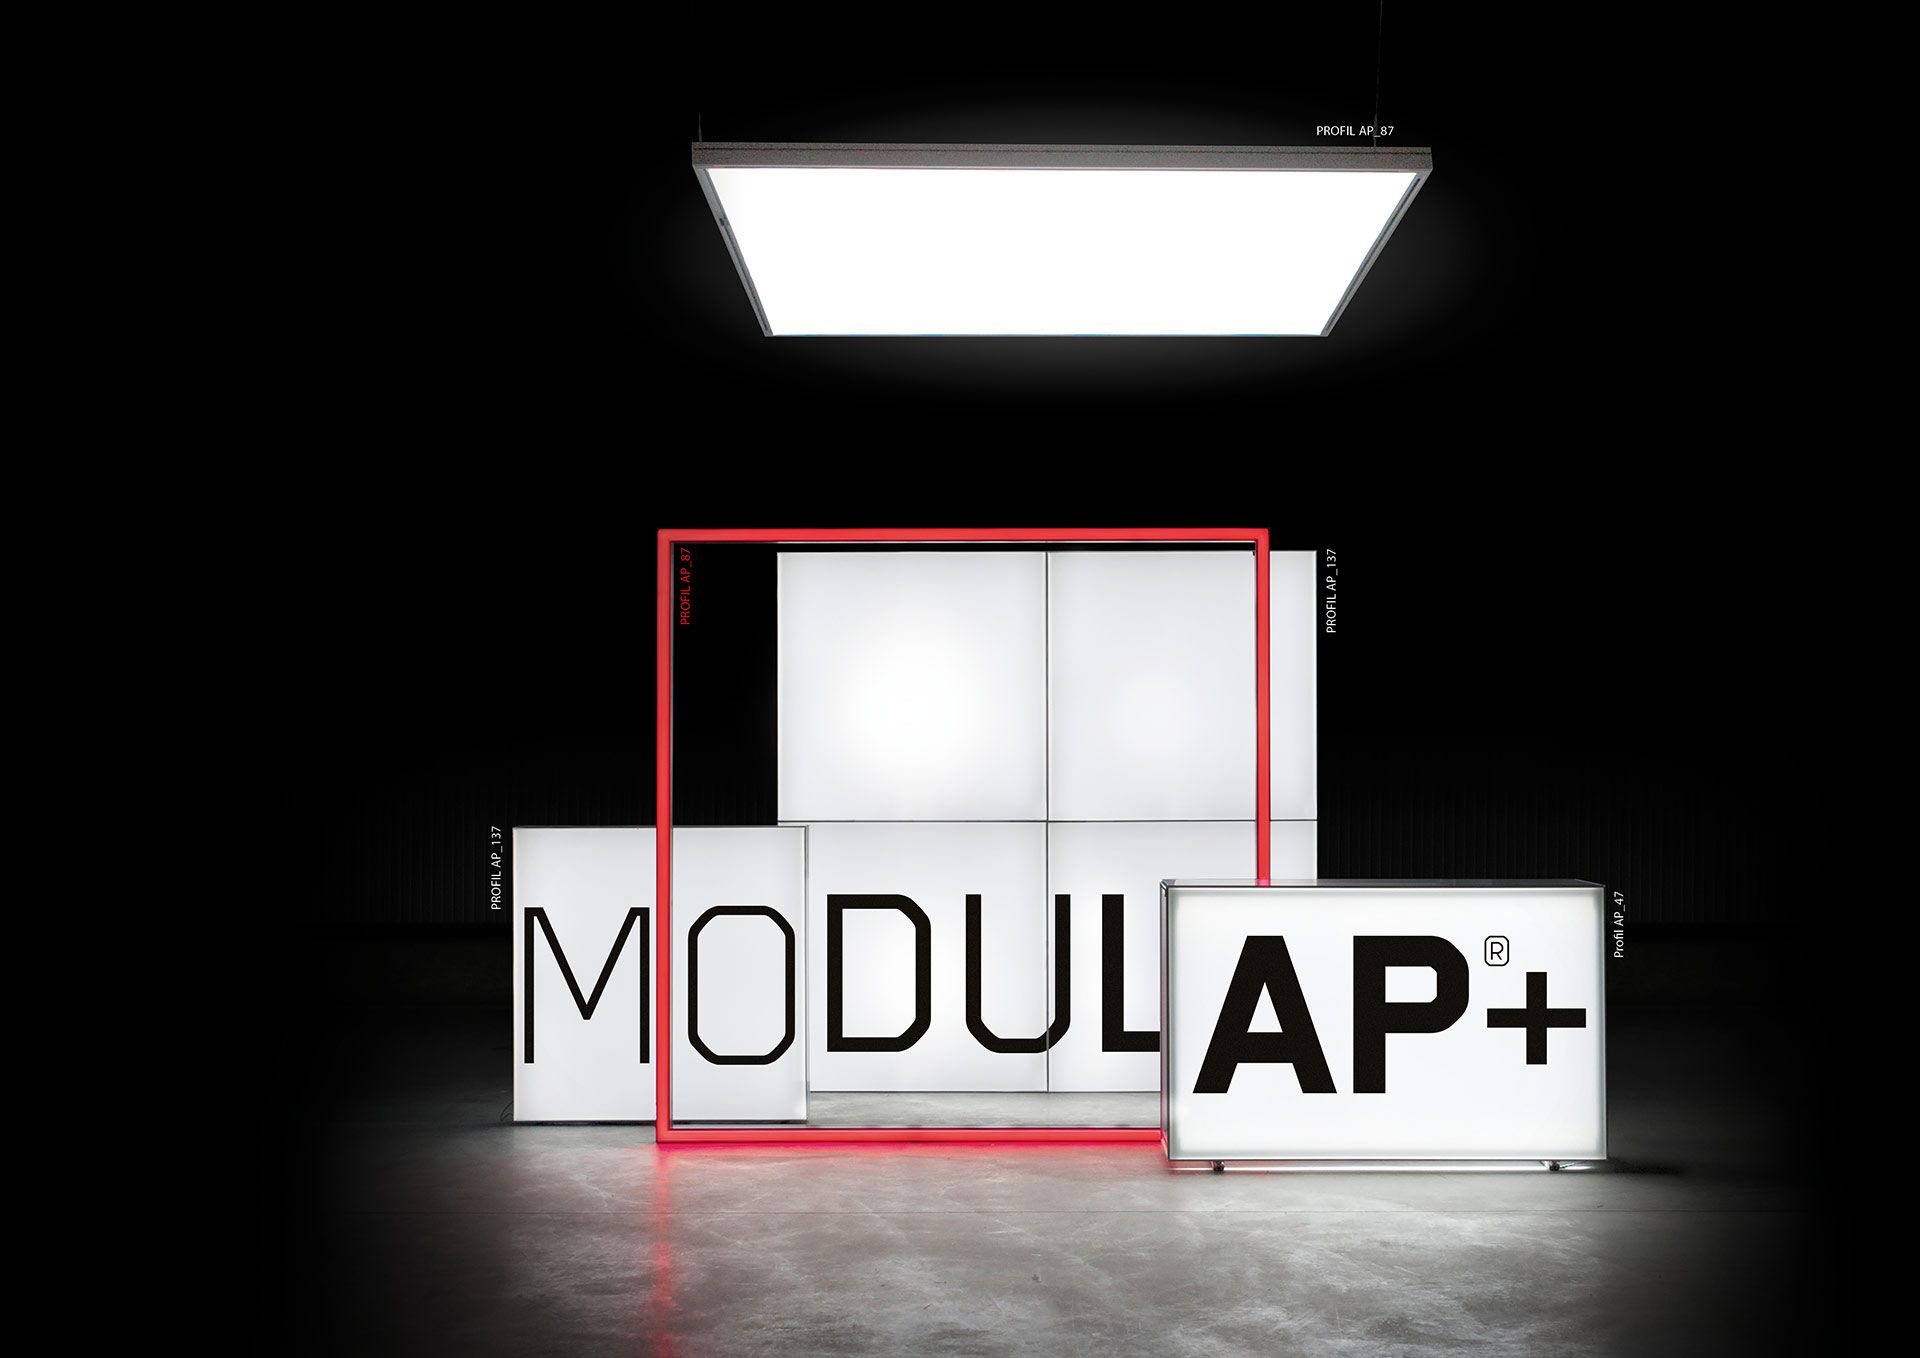 Popular MODULAP ALLOWS TO BUILD HIGH END VISUAL ELEMENTS FAST EASY AND SAFE Modulap System f r visuelle Kommunikation leicht mobil f r Messe Archit u